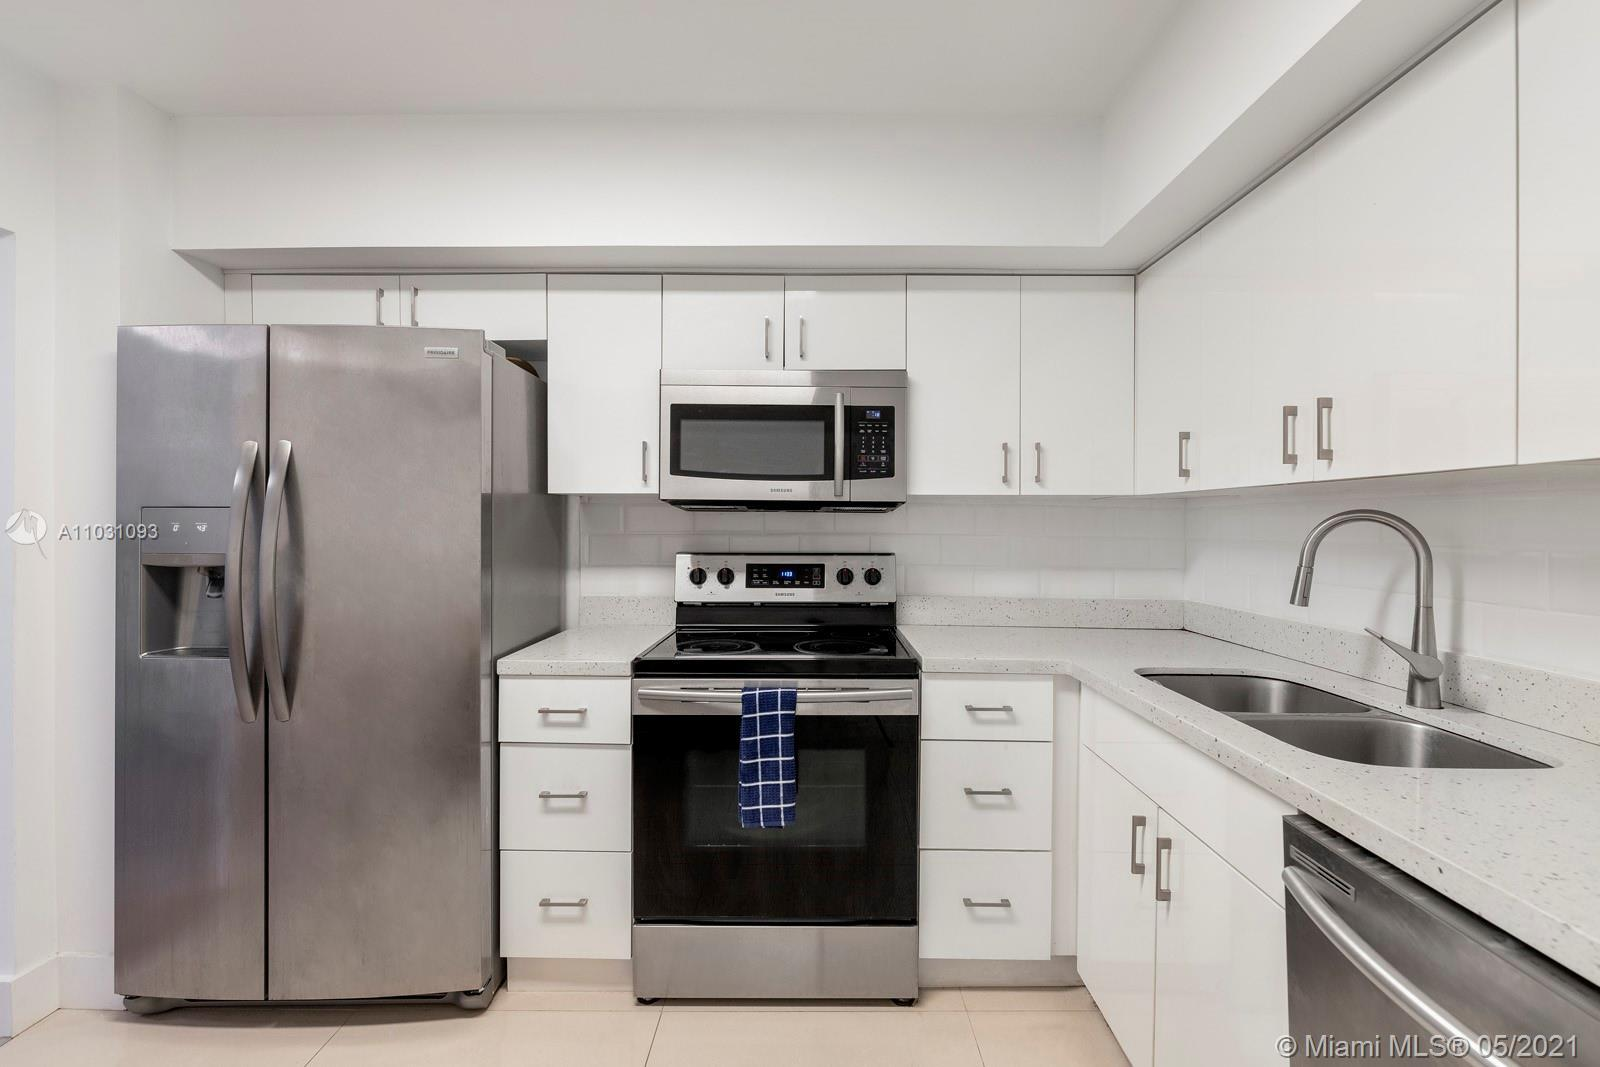 Fully Renovated 2 bedroom in Admiral's Port! A must see. The building has many amenities that includ